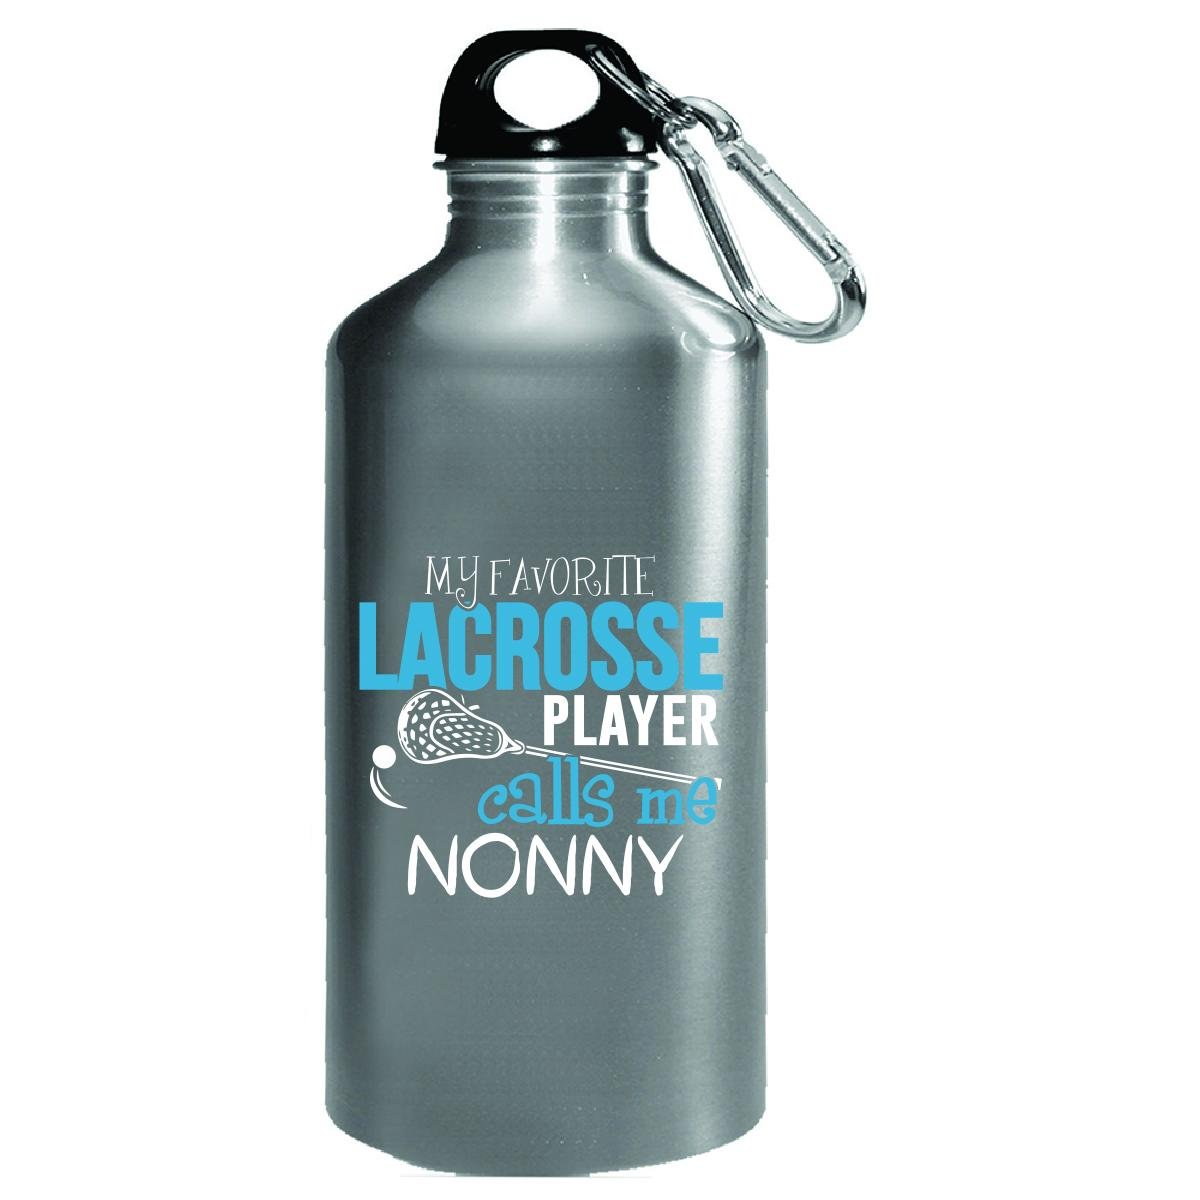 My Favorite Lacrosse Player Calls Me Nonny - Water Bottle